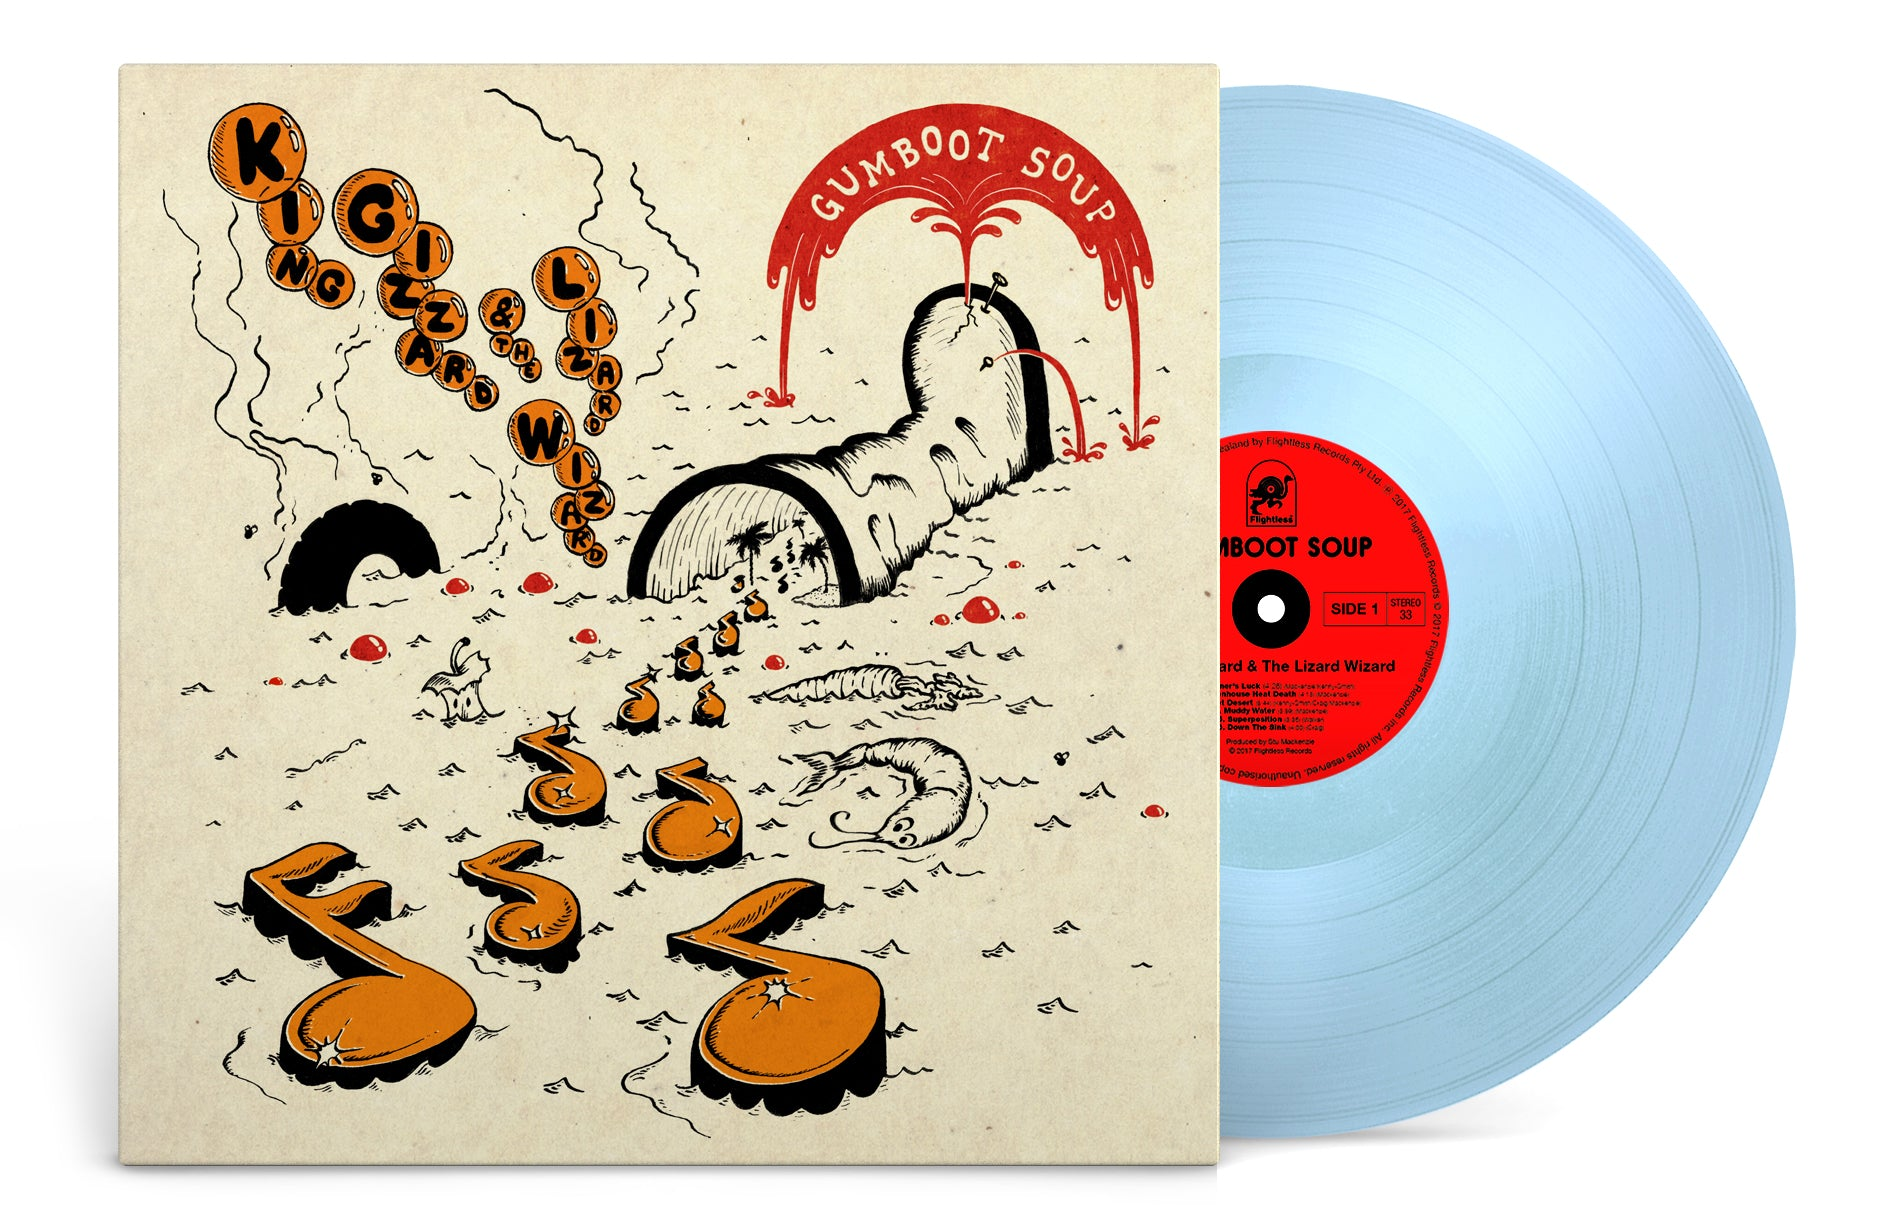 King Gizzard & The Lizard Wizard - Gumboot Soup (Baby Blue Wax Limited Edition)